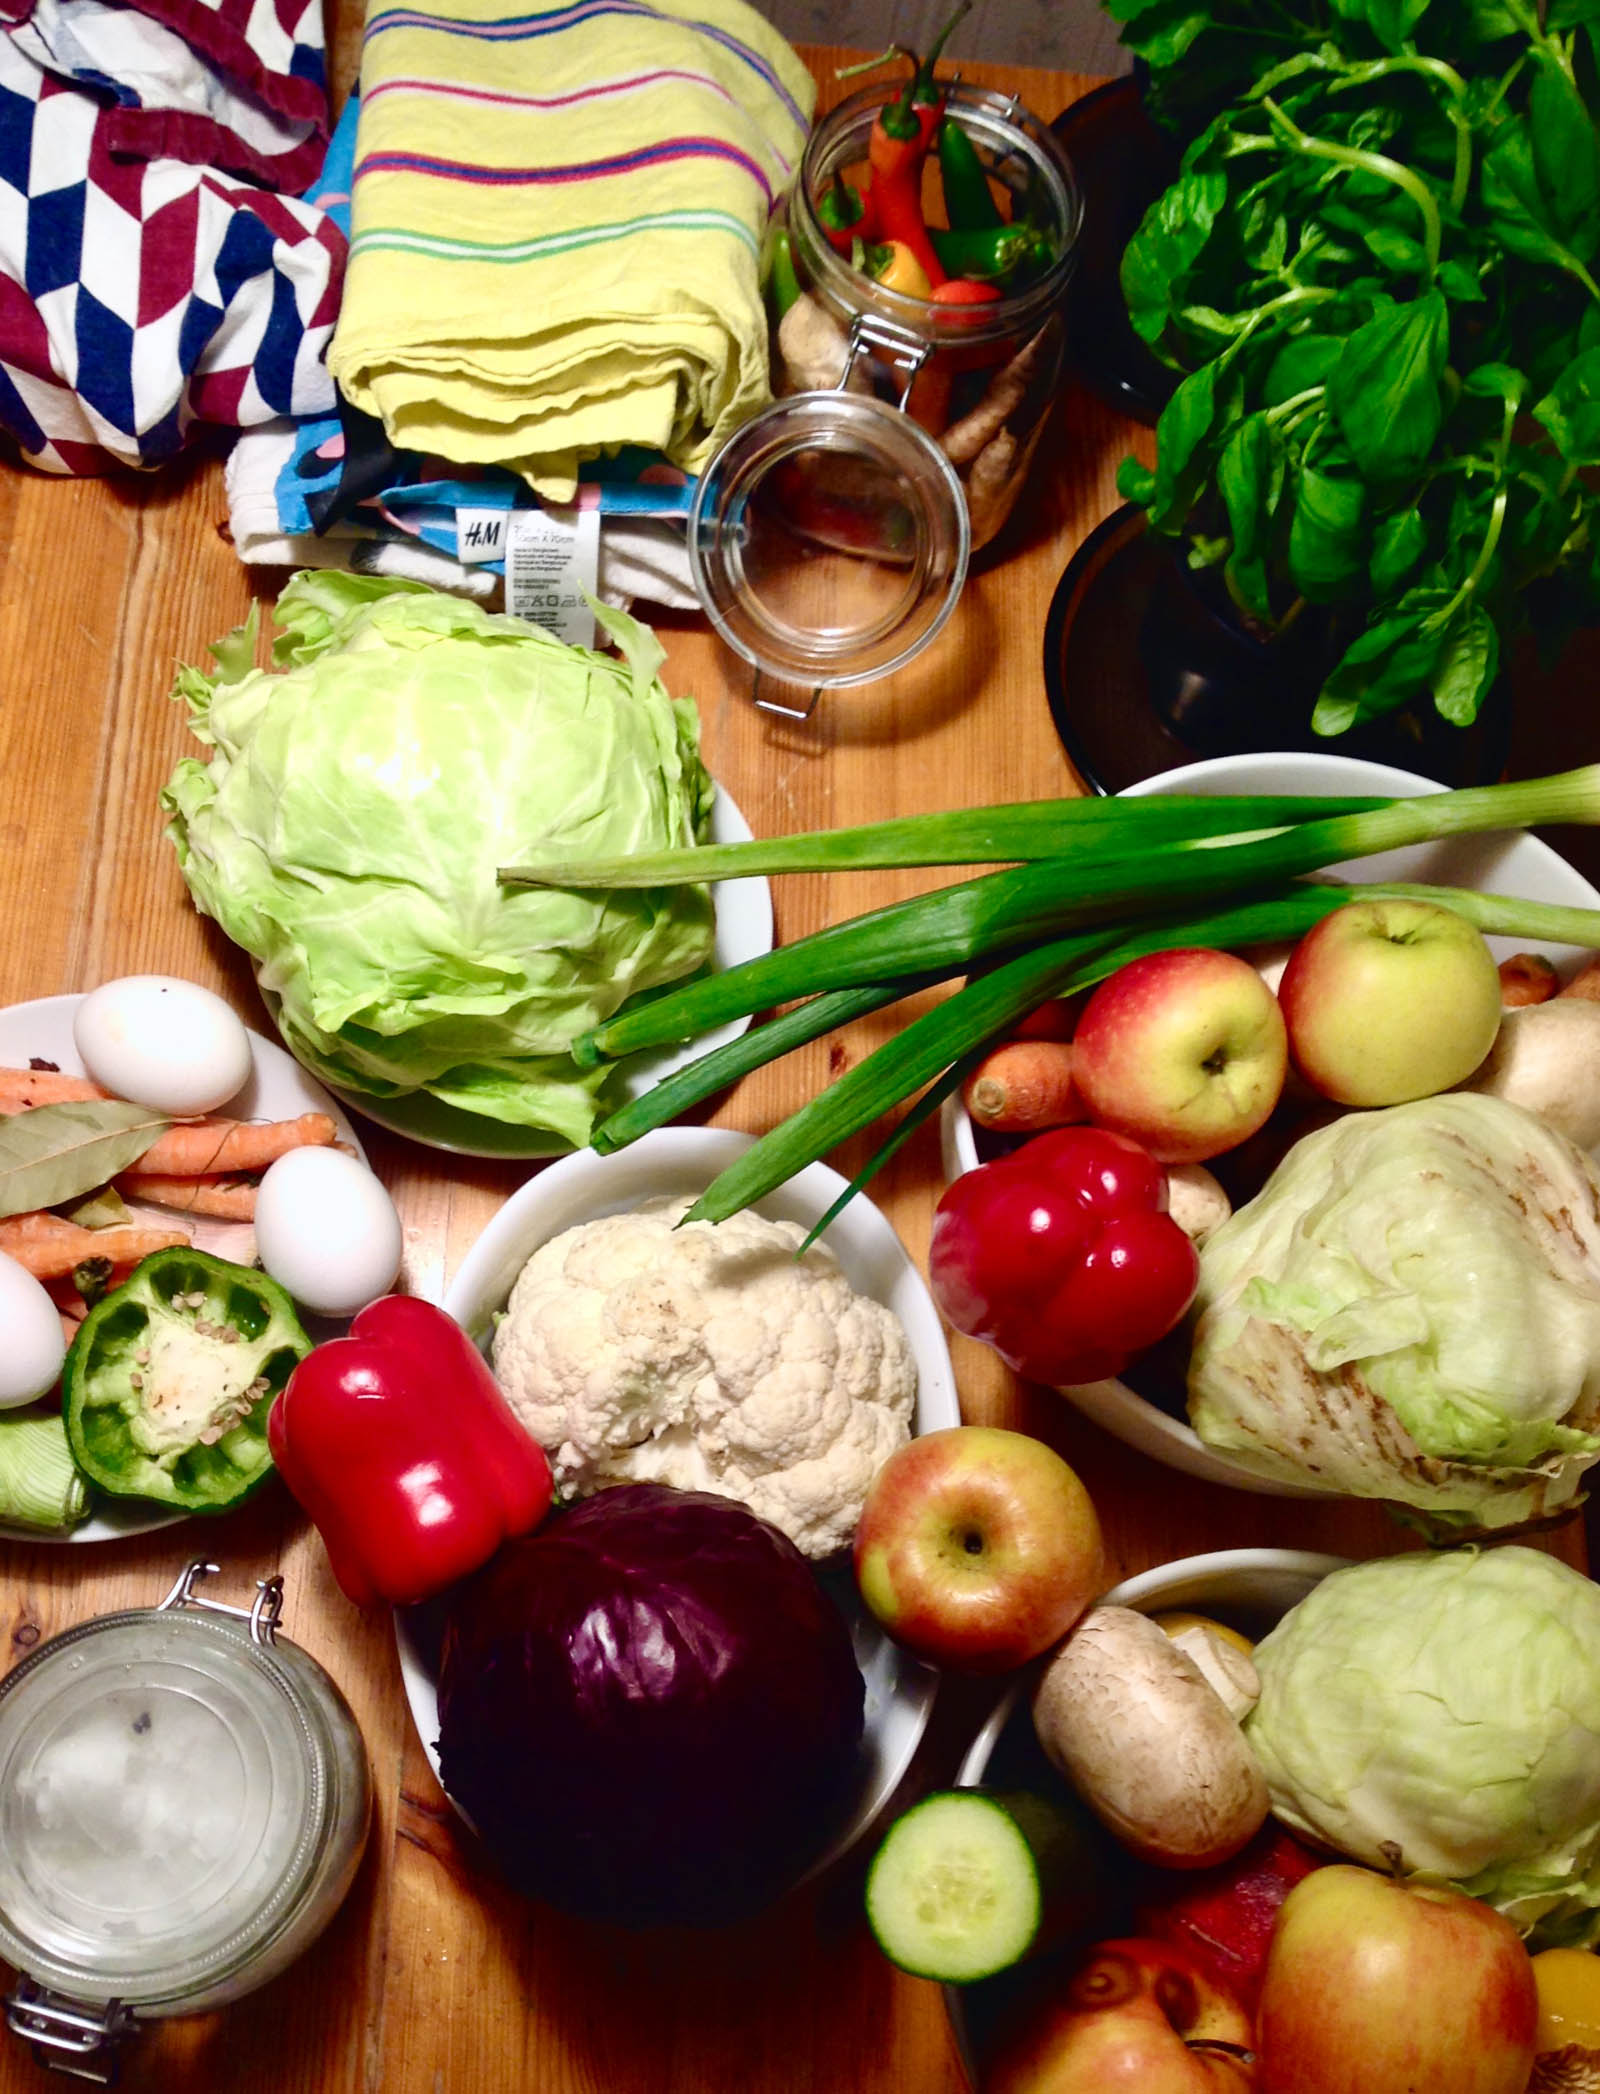 10 Tips for Making Healthier and Conscious Food Choices - Selection of fruits and vegetables on a table.